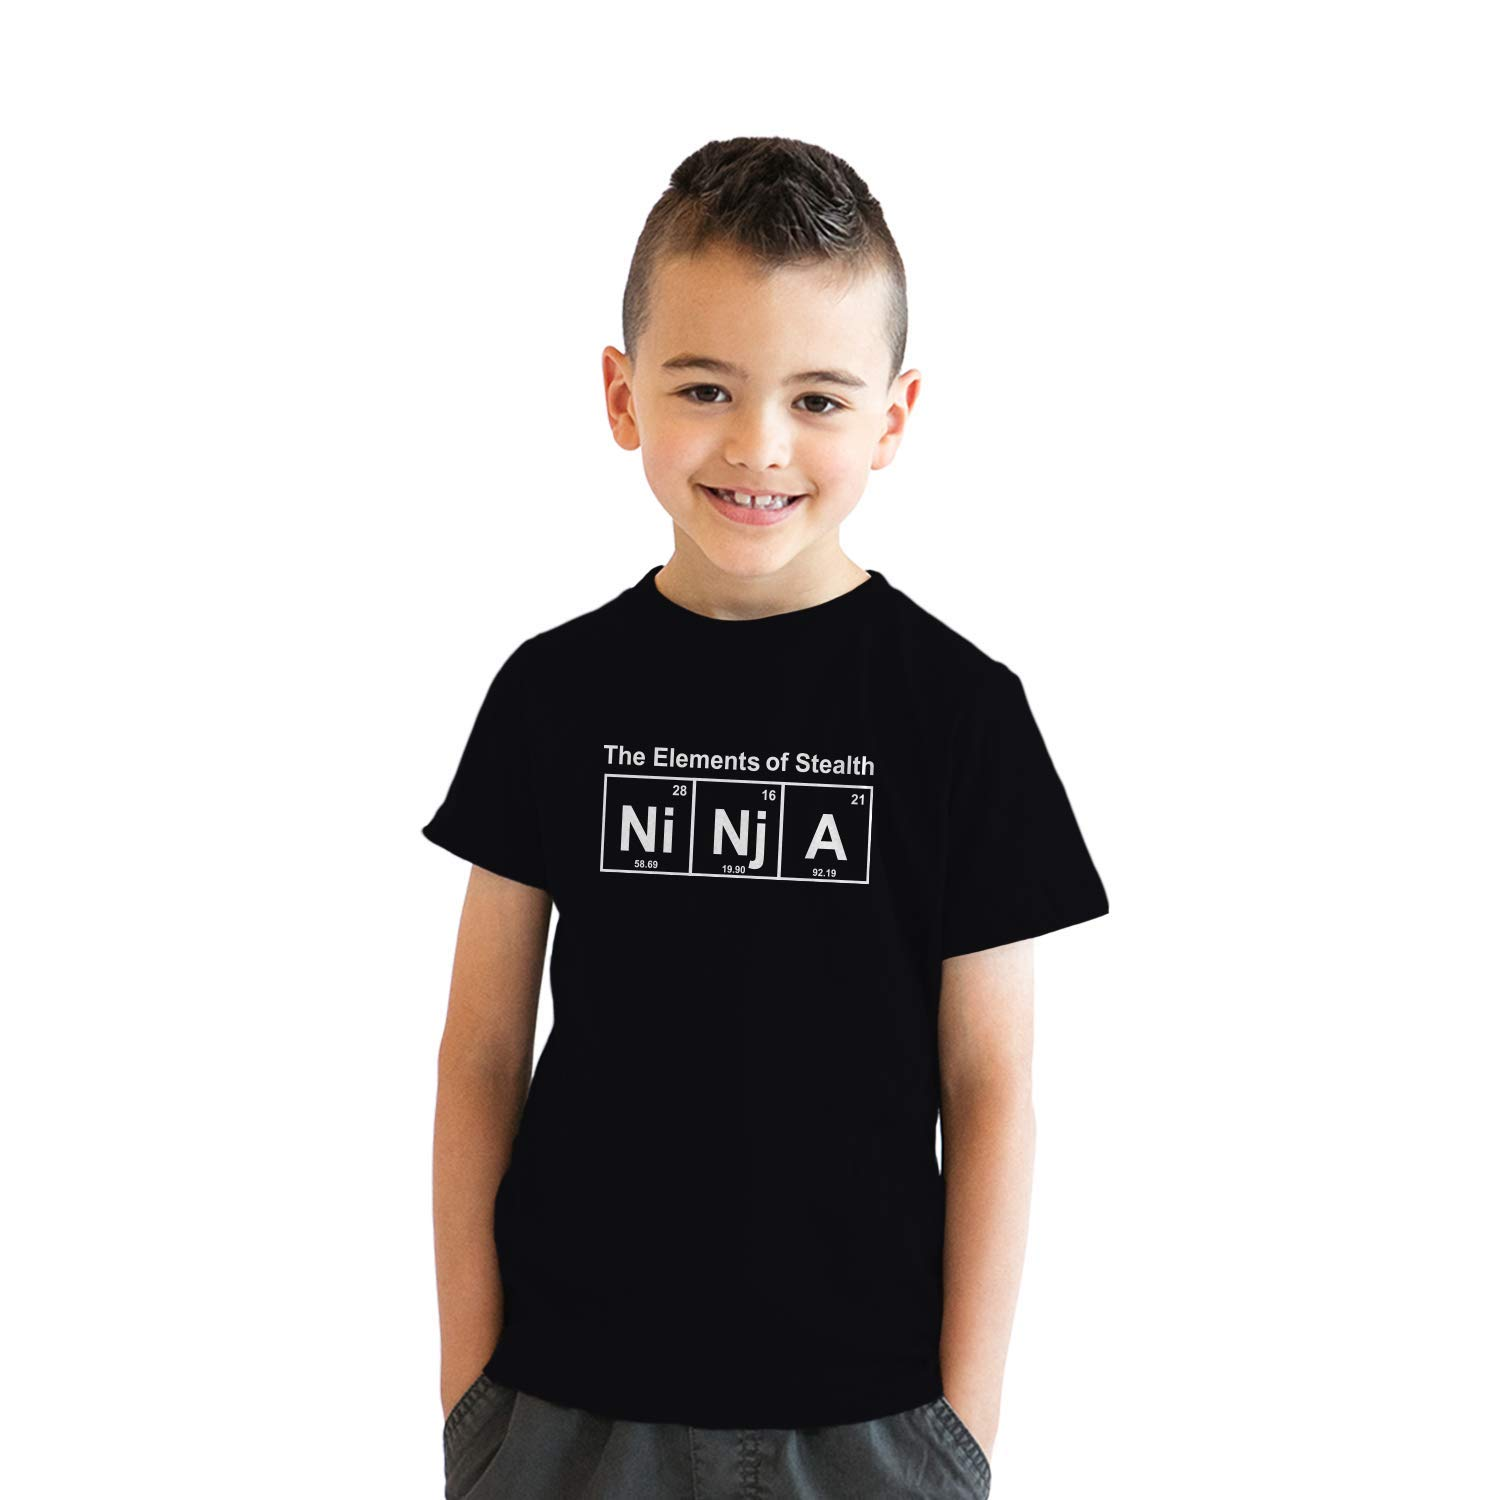 Youth Ninja Element of Stealth T Shirt Funny Science Warrior Kids Nerdy Tee (Black) - M by Crazy Dog T-Shirts